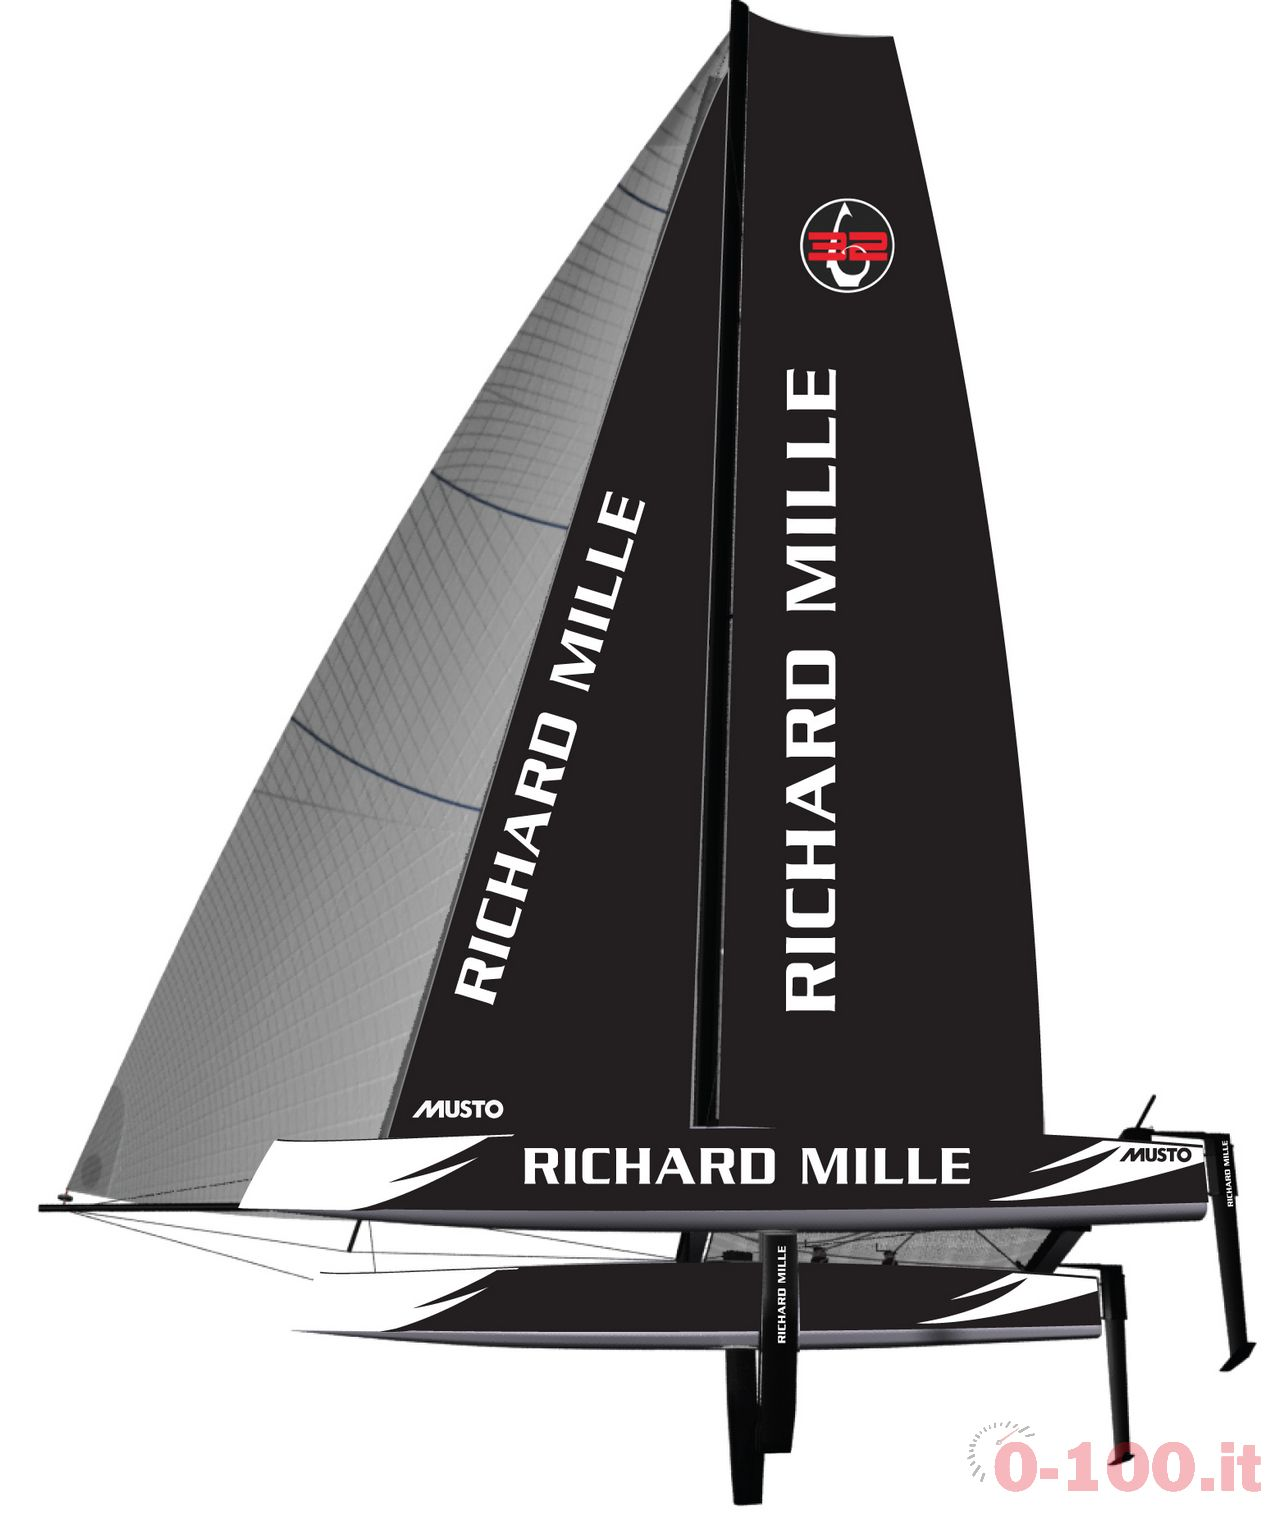 Richard Mille GC32, option 2.2 v3